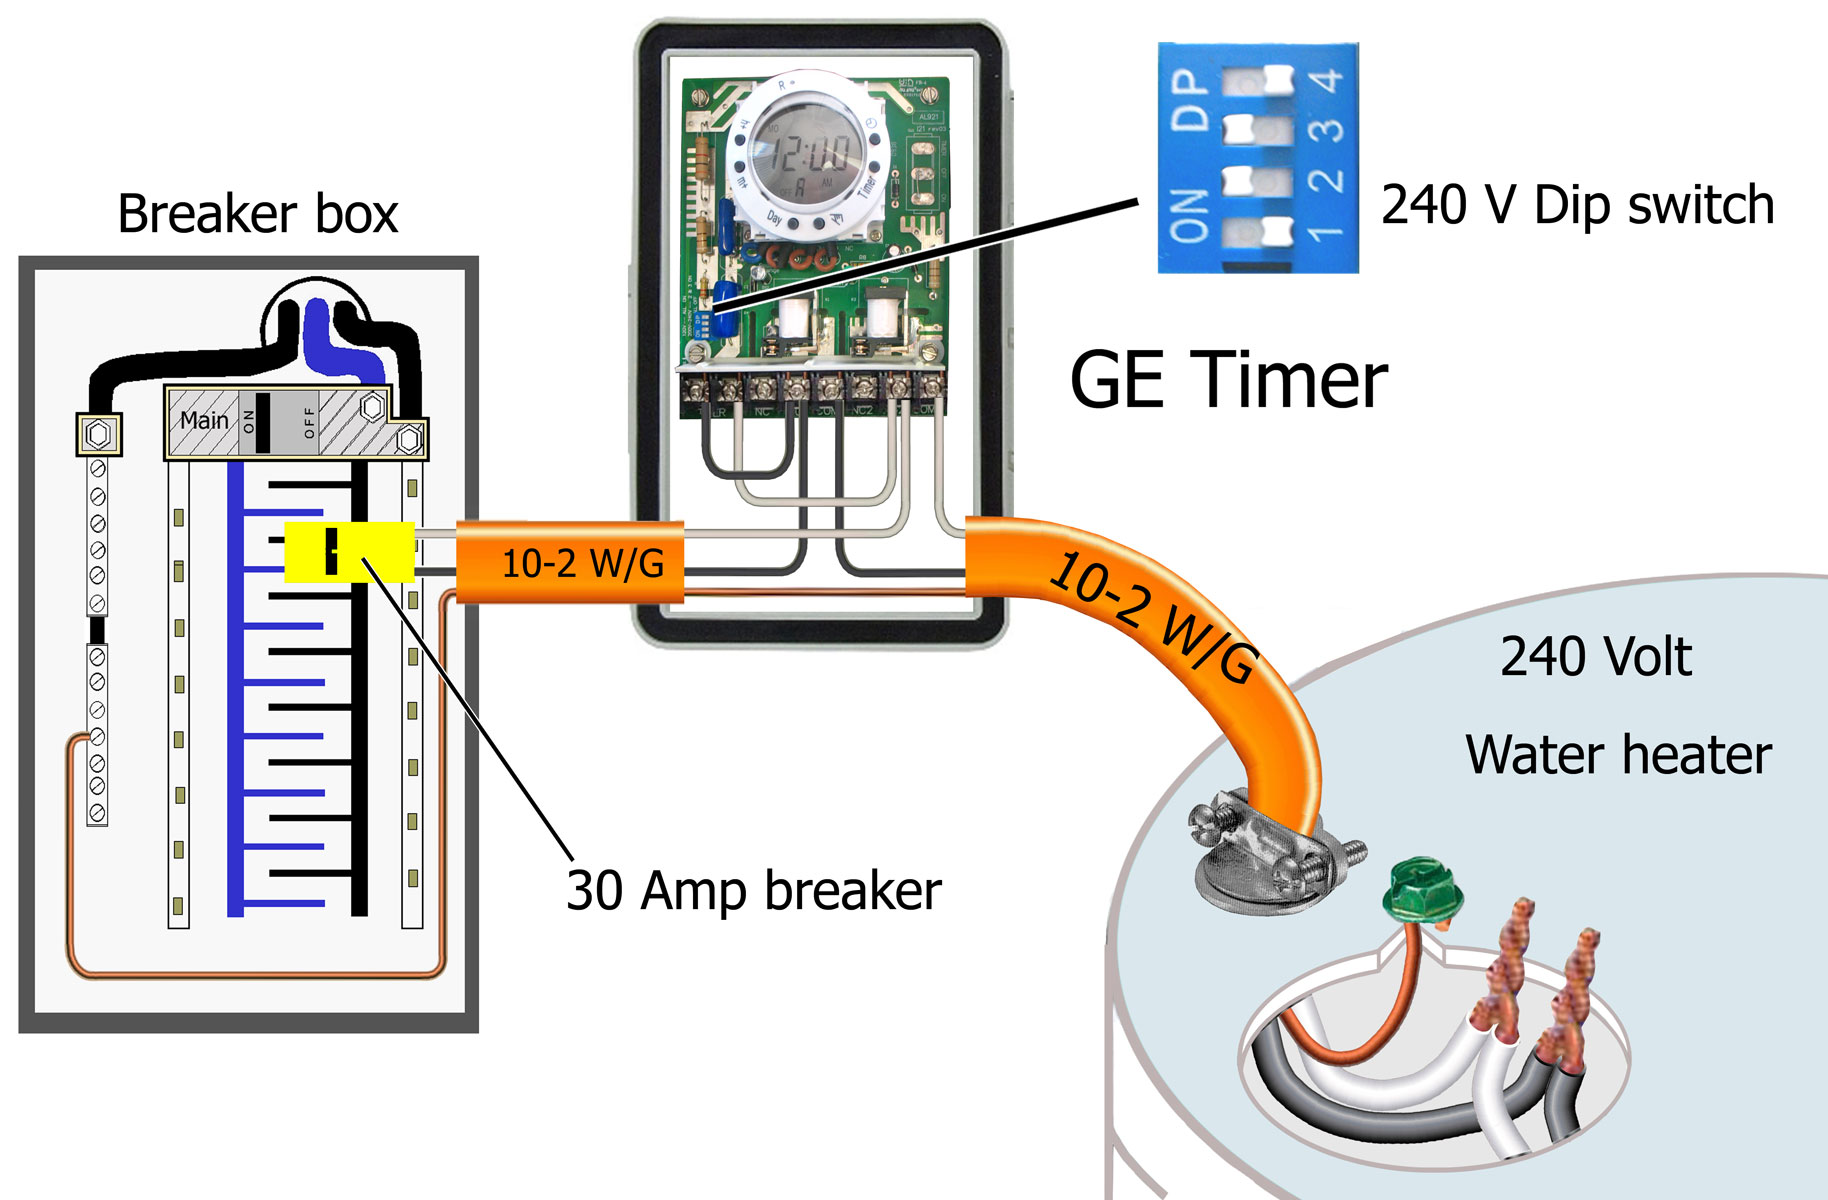 GE to water heater 500a how to wire ge 15136 timer water heater wiring diagram at soozxer.org